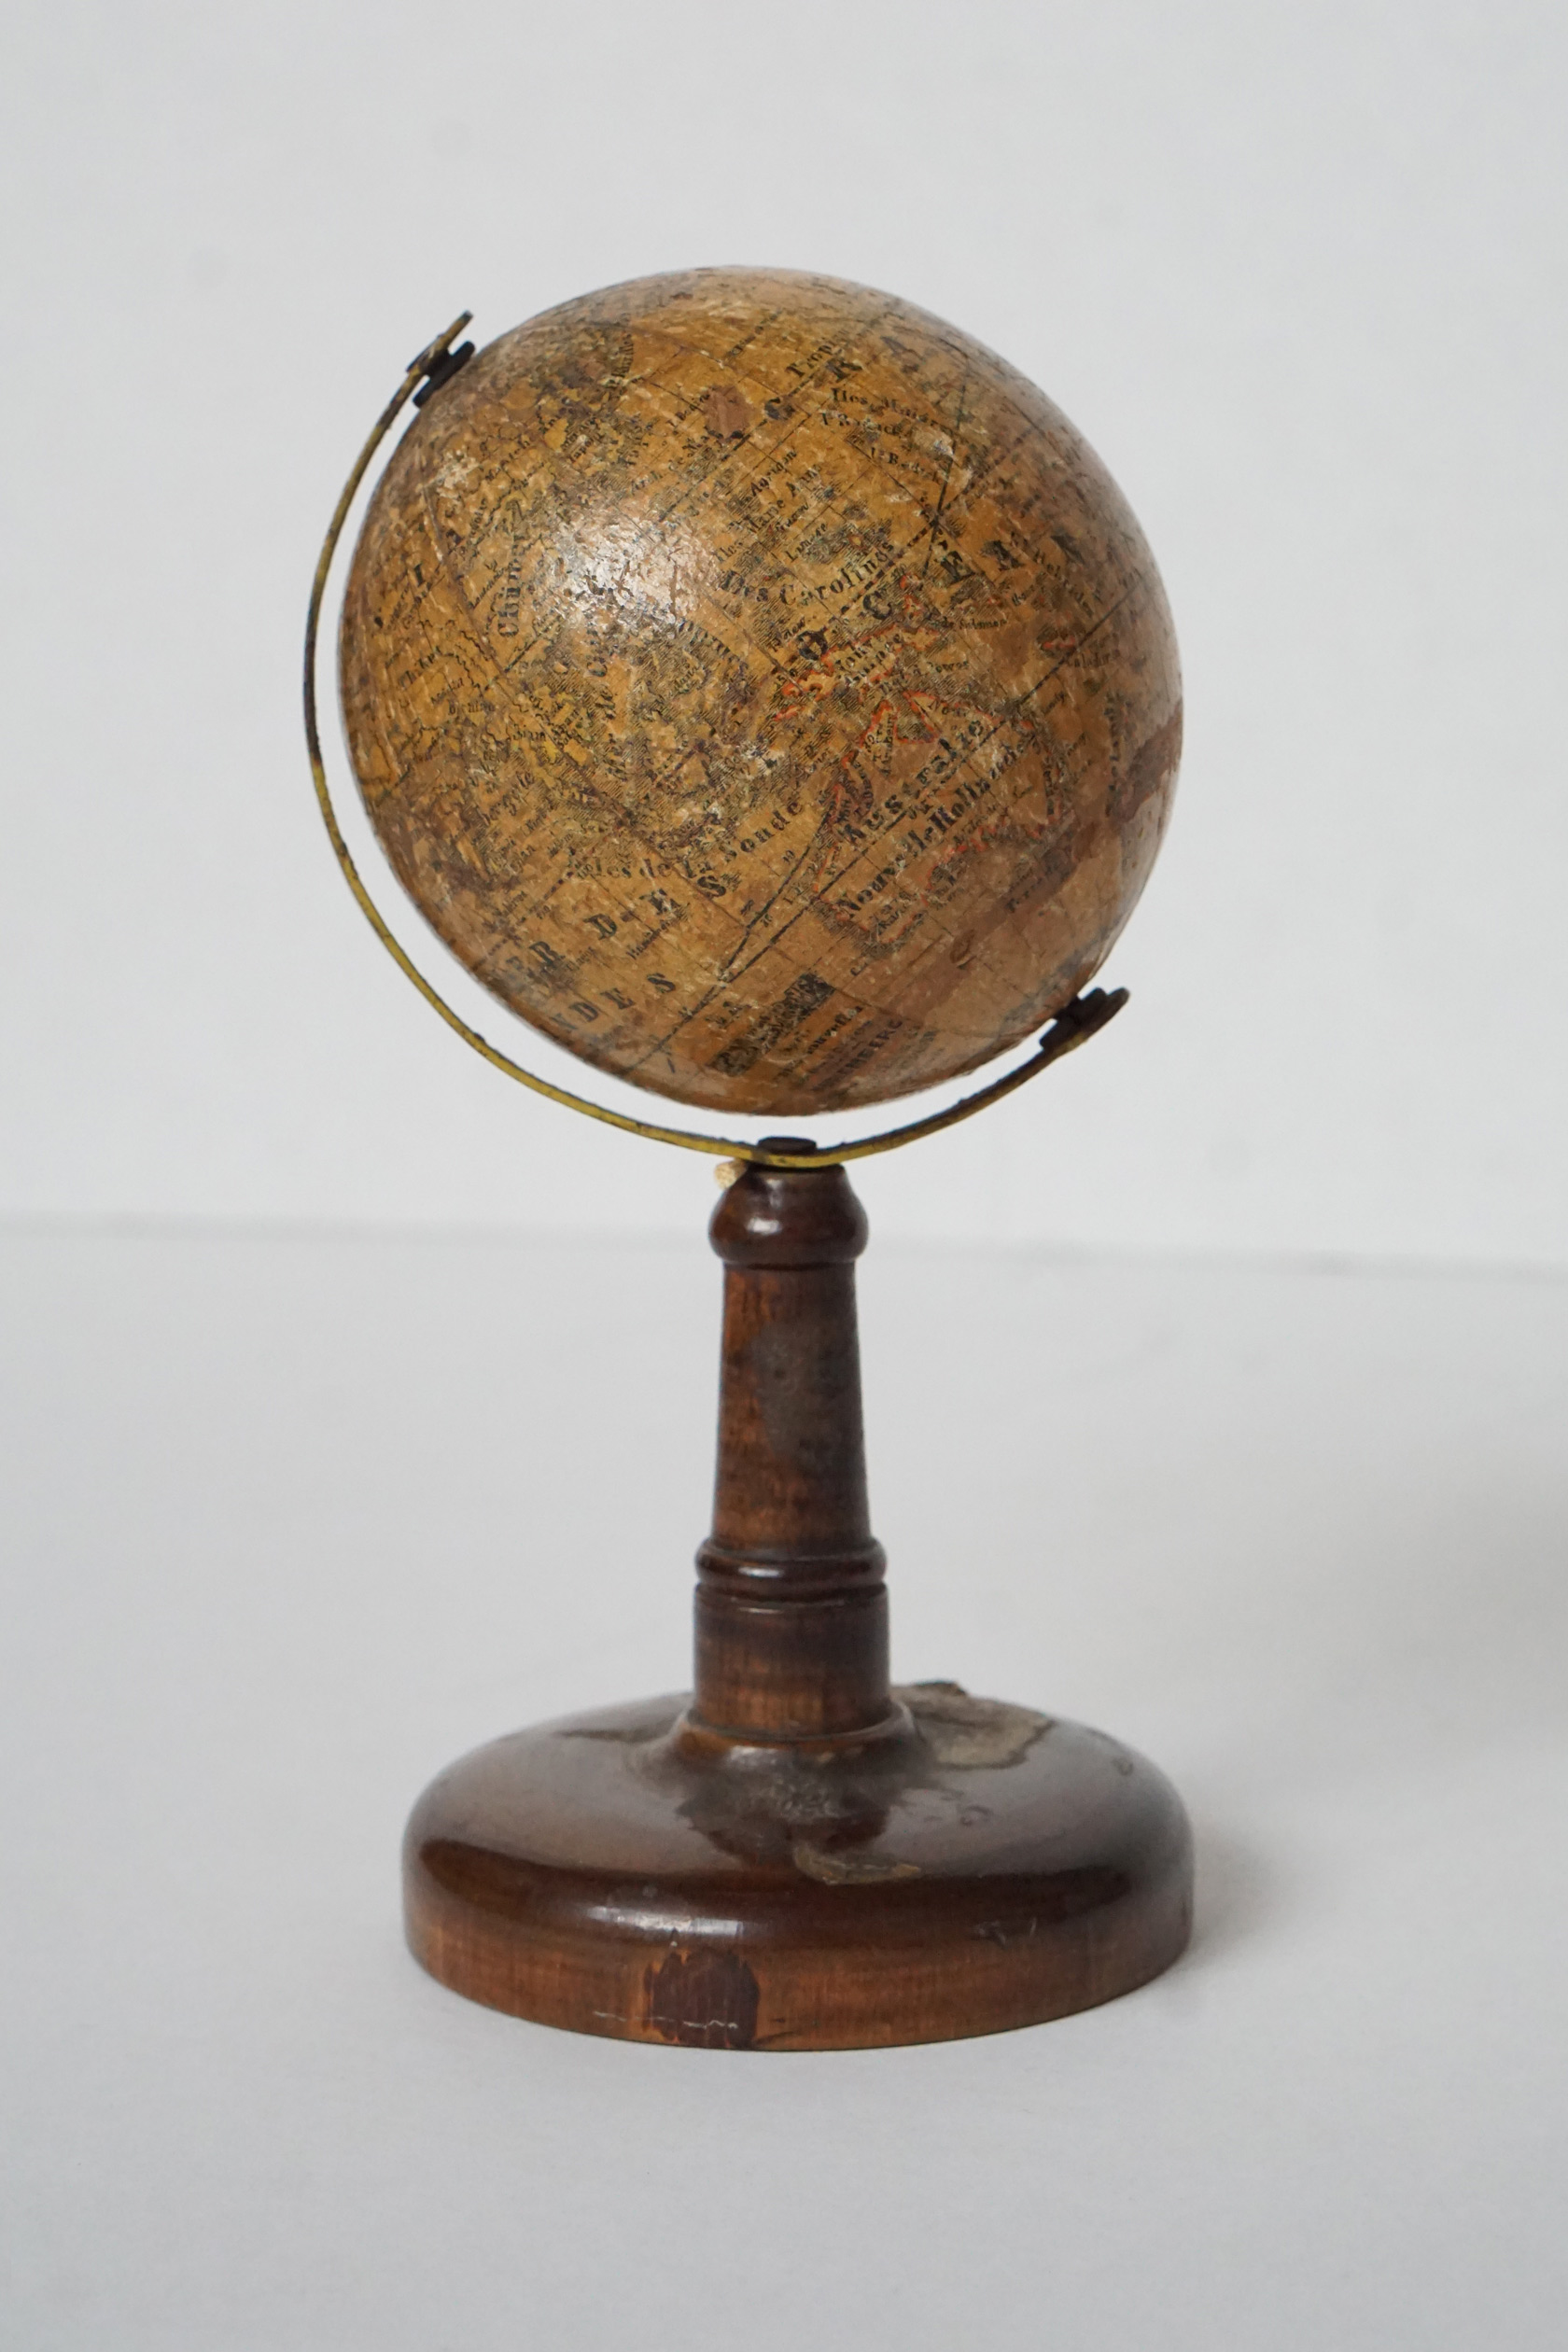 Extraordinary Abel Klinger Small Globe on Wooden Stand